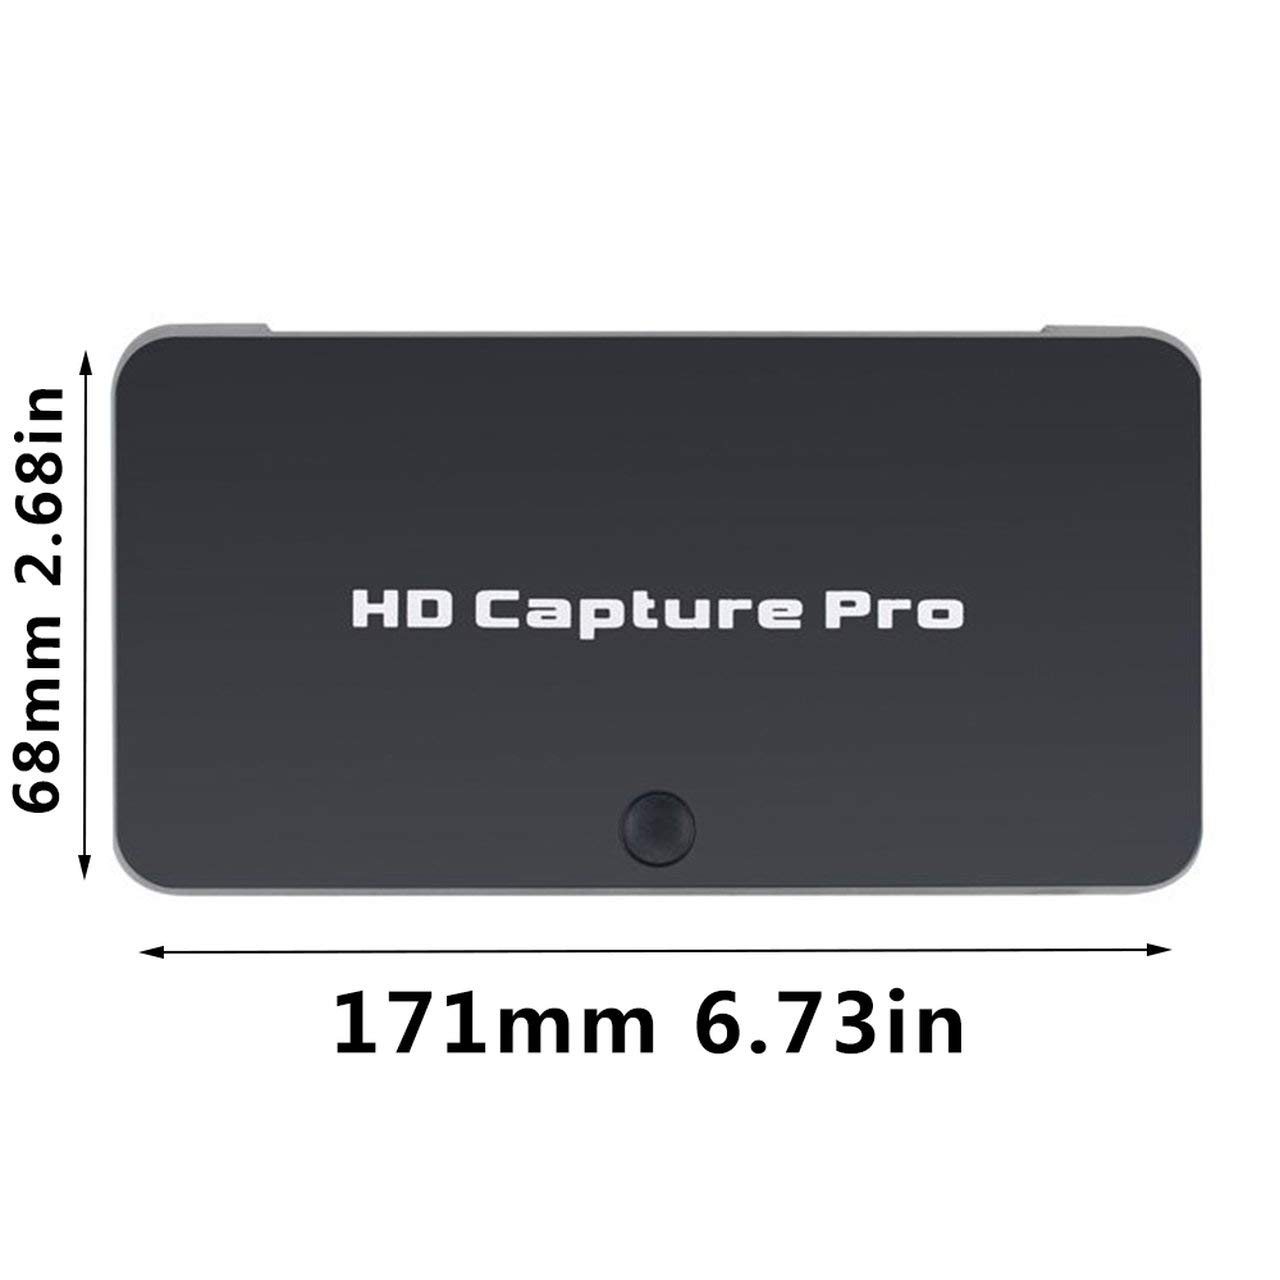 creatYspace HD 1080P Game Capture Video Capture HDMI Video Recorder Remote Control Timed Recording for PS4 Xbox Support Mic Plug and Play